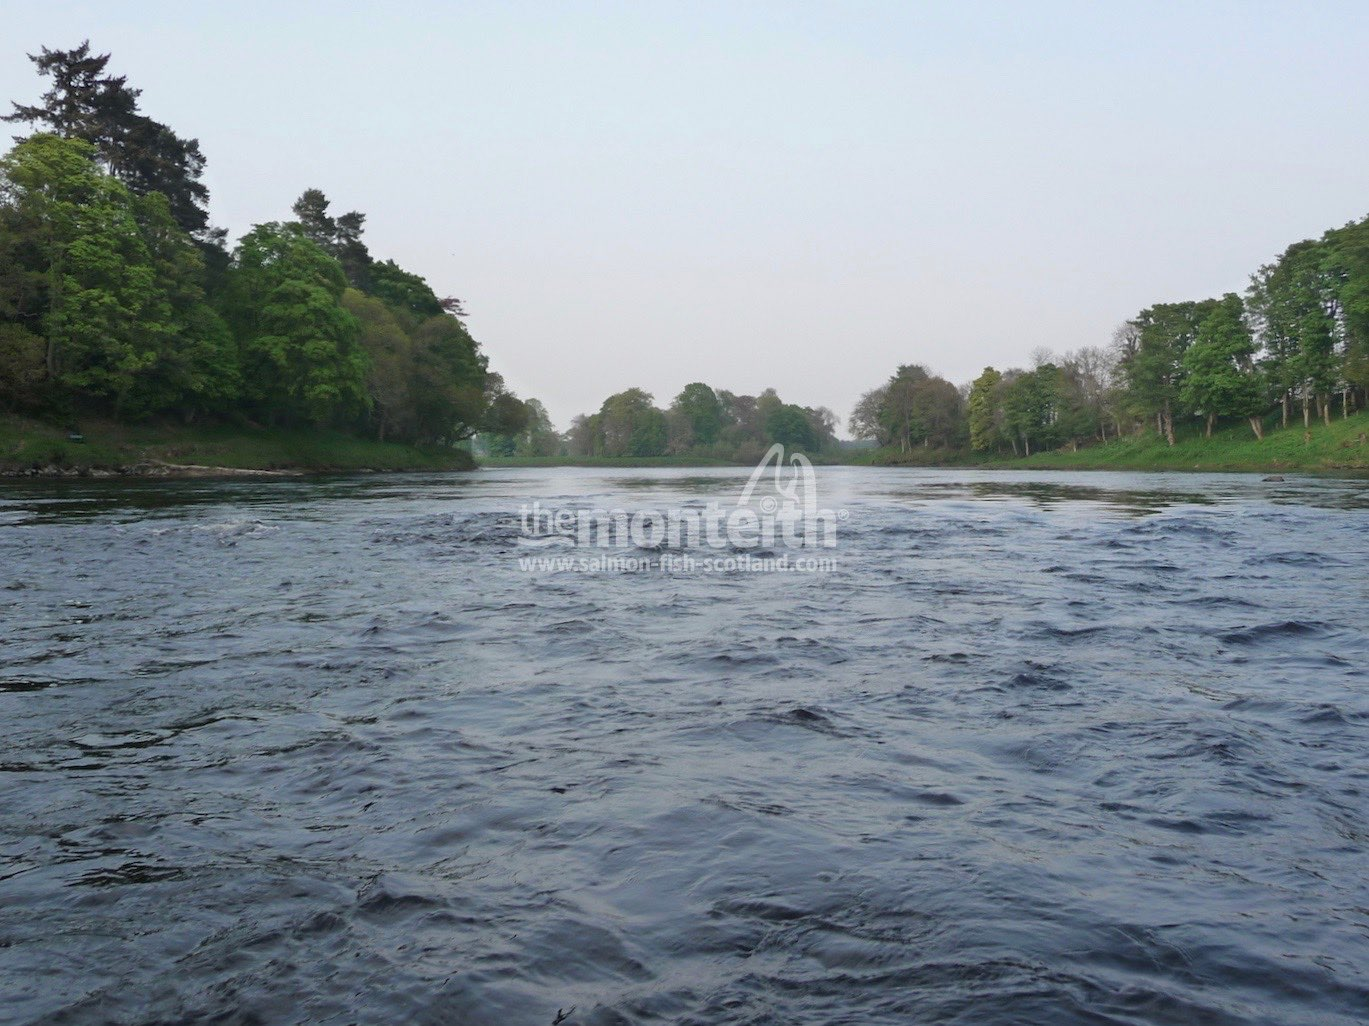 Islamouth Beat River Tay 5